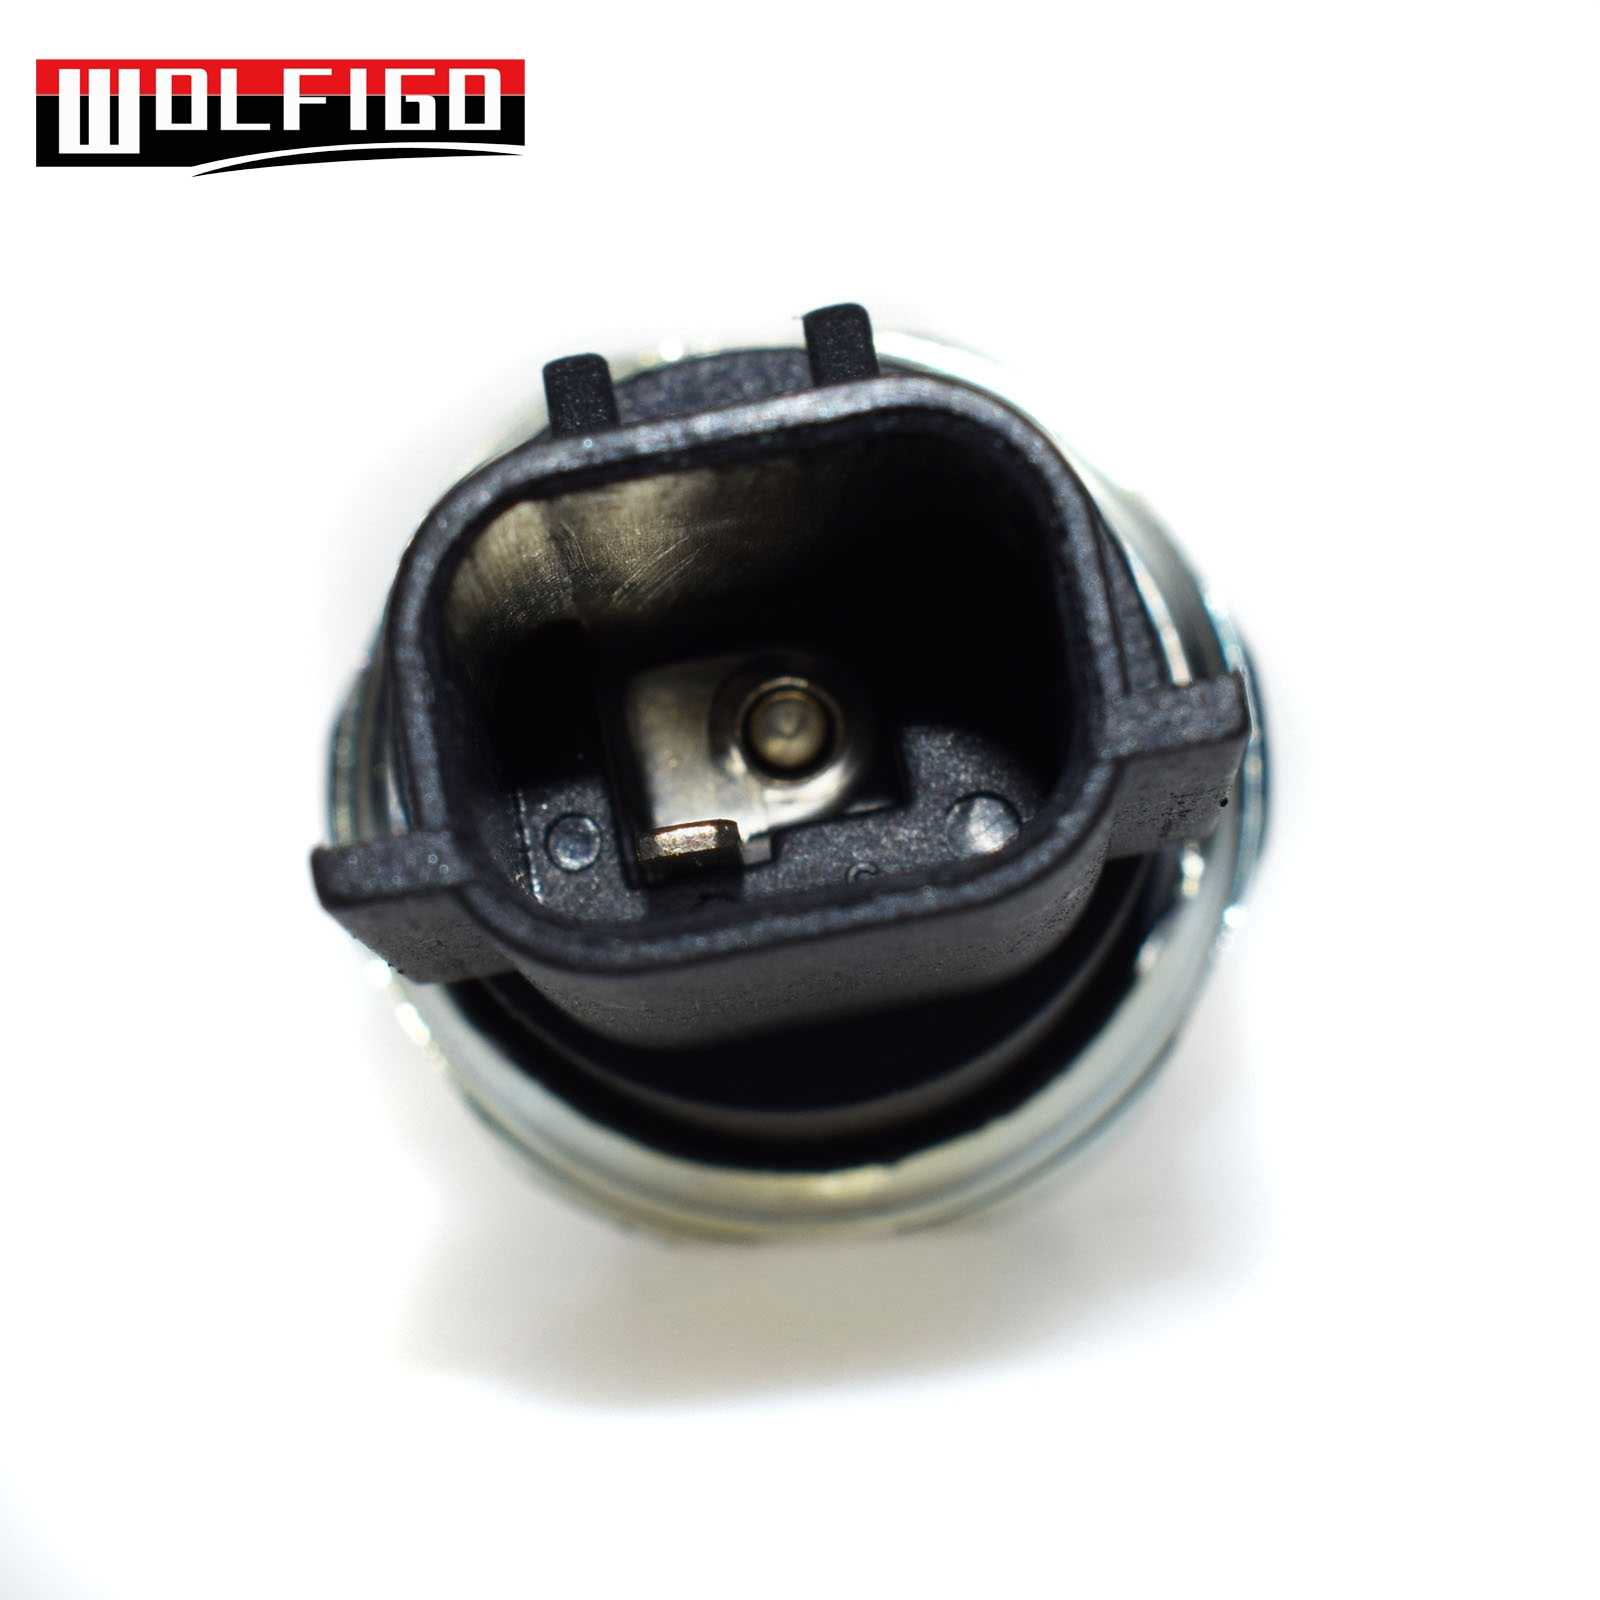 hight resolution of  wolfigo new engine oil pressure switch sender for dodge neon voyager chrysler ps287t ps287